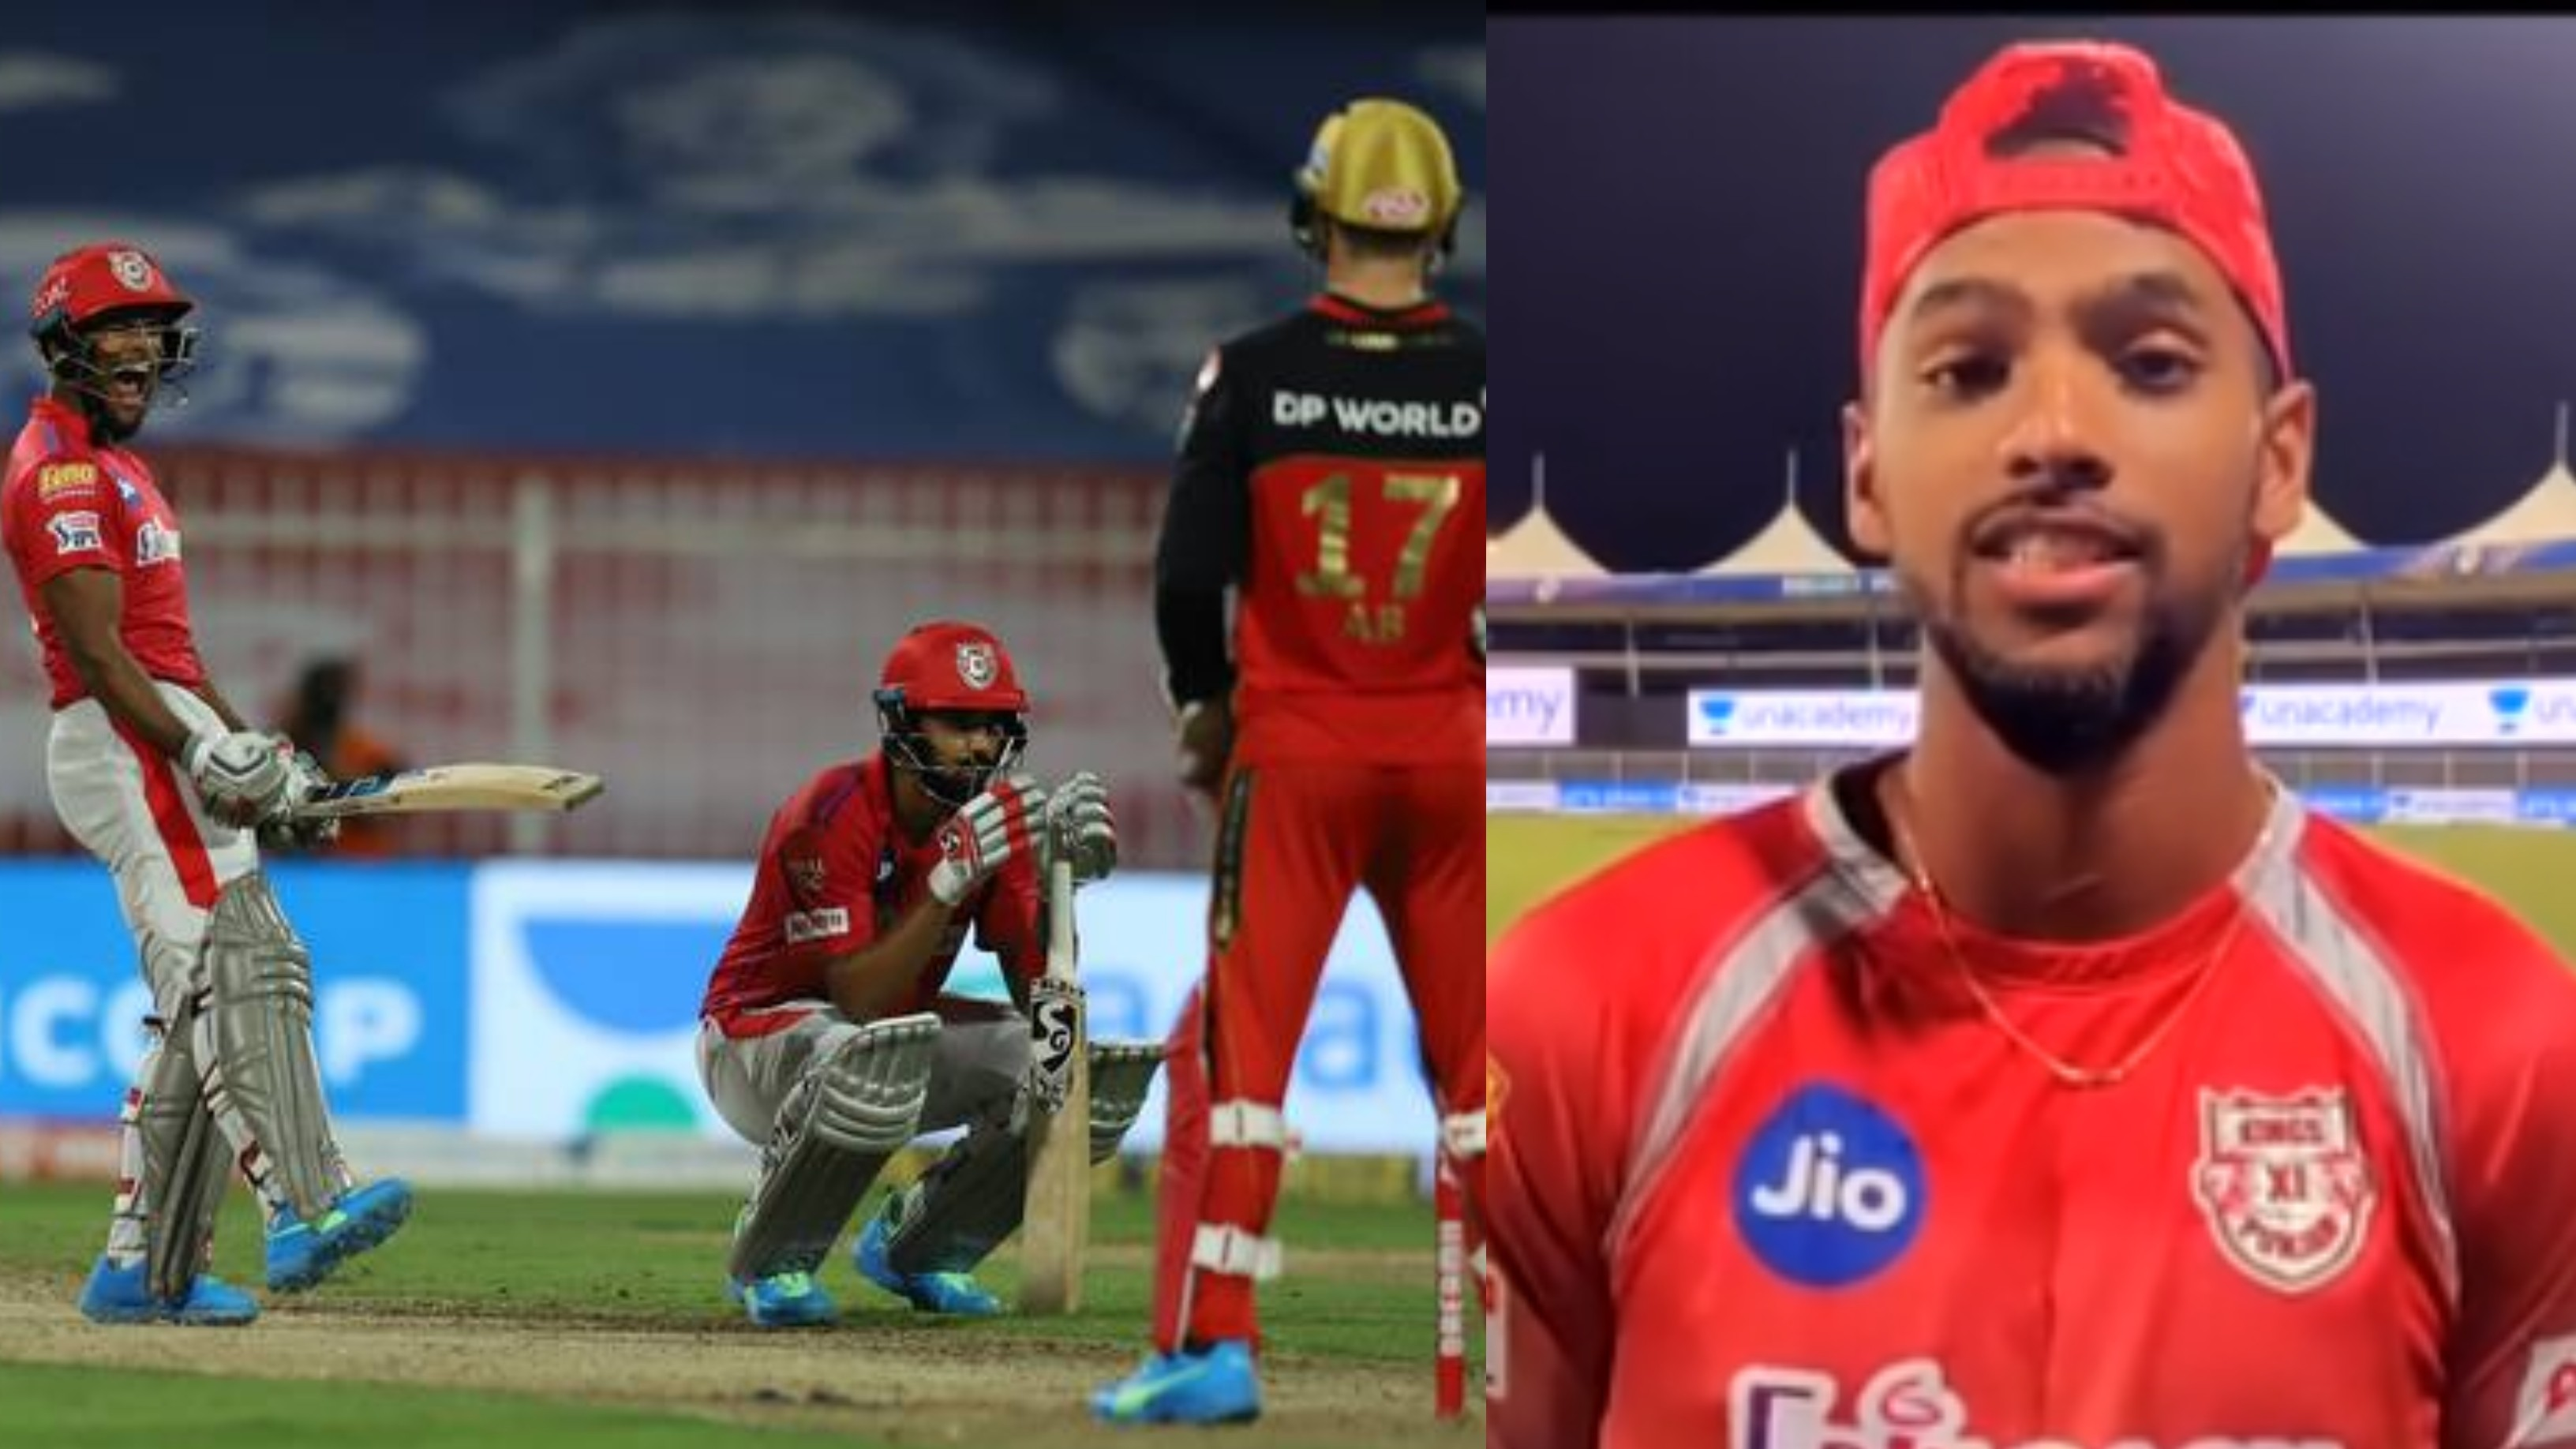 IPL 2020: WATCH - Nicholas Pooran opens up about his last-ball sixer; says it was like